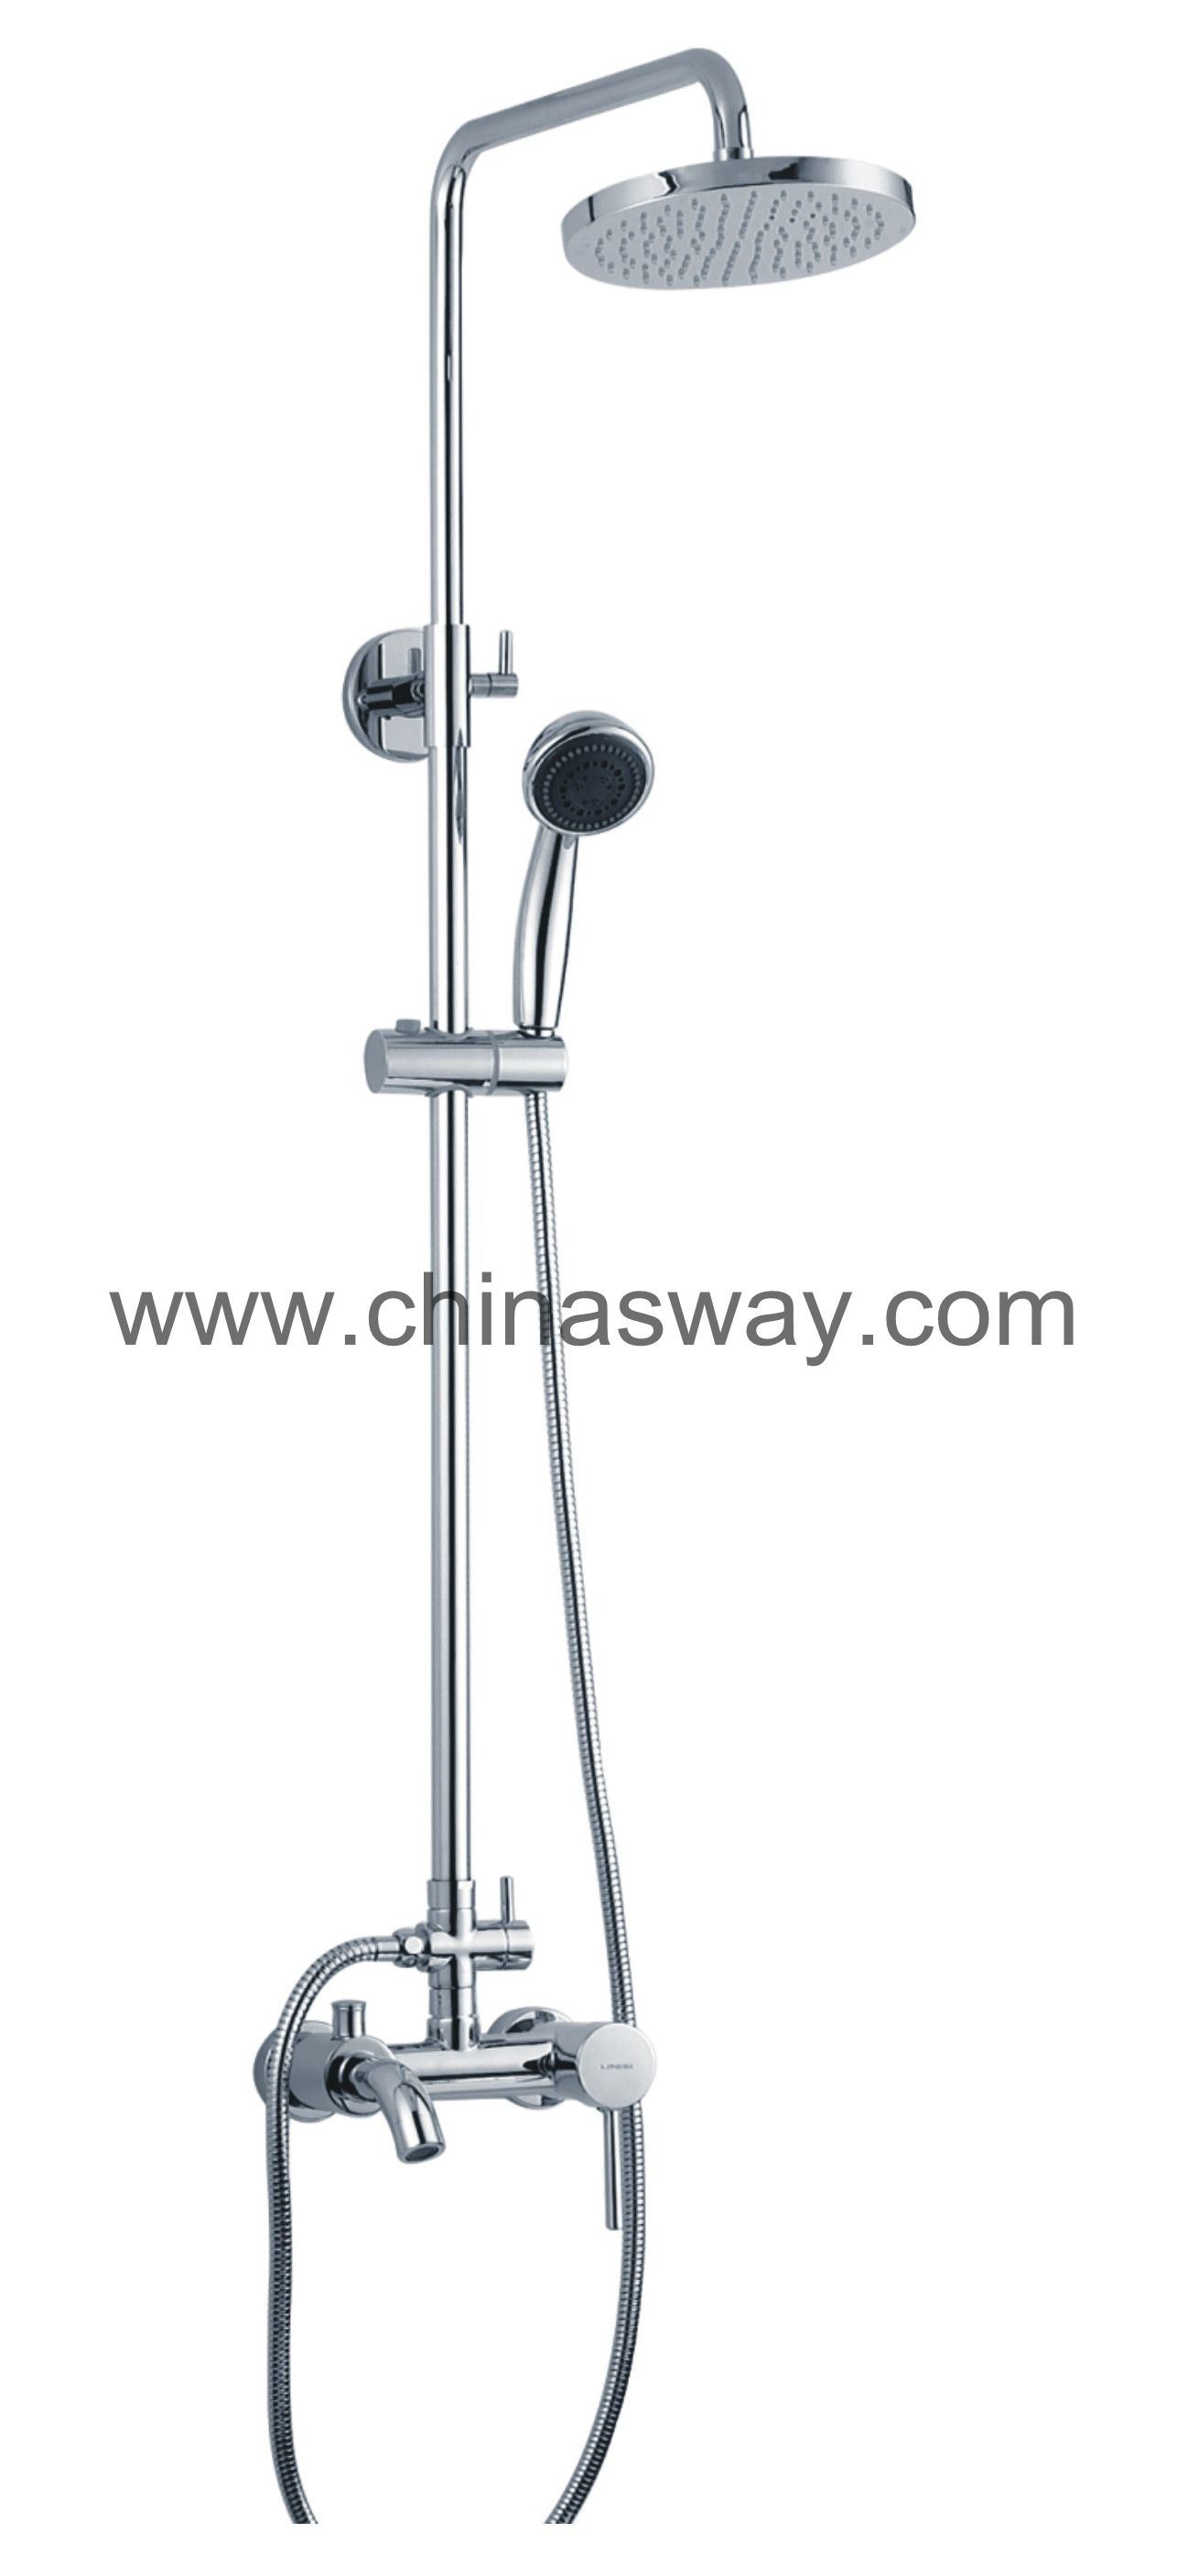 Round Shower Set, Shower Column, Shower Pipe, Bathroom Fitting (SW-1091-7)